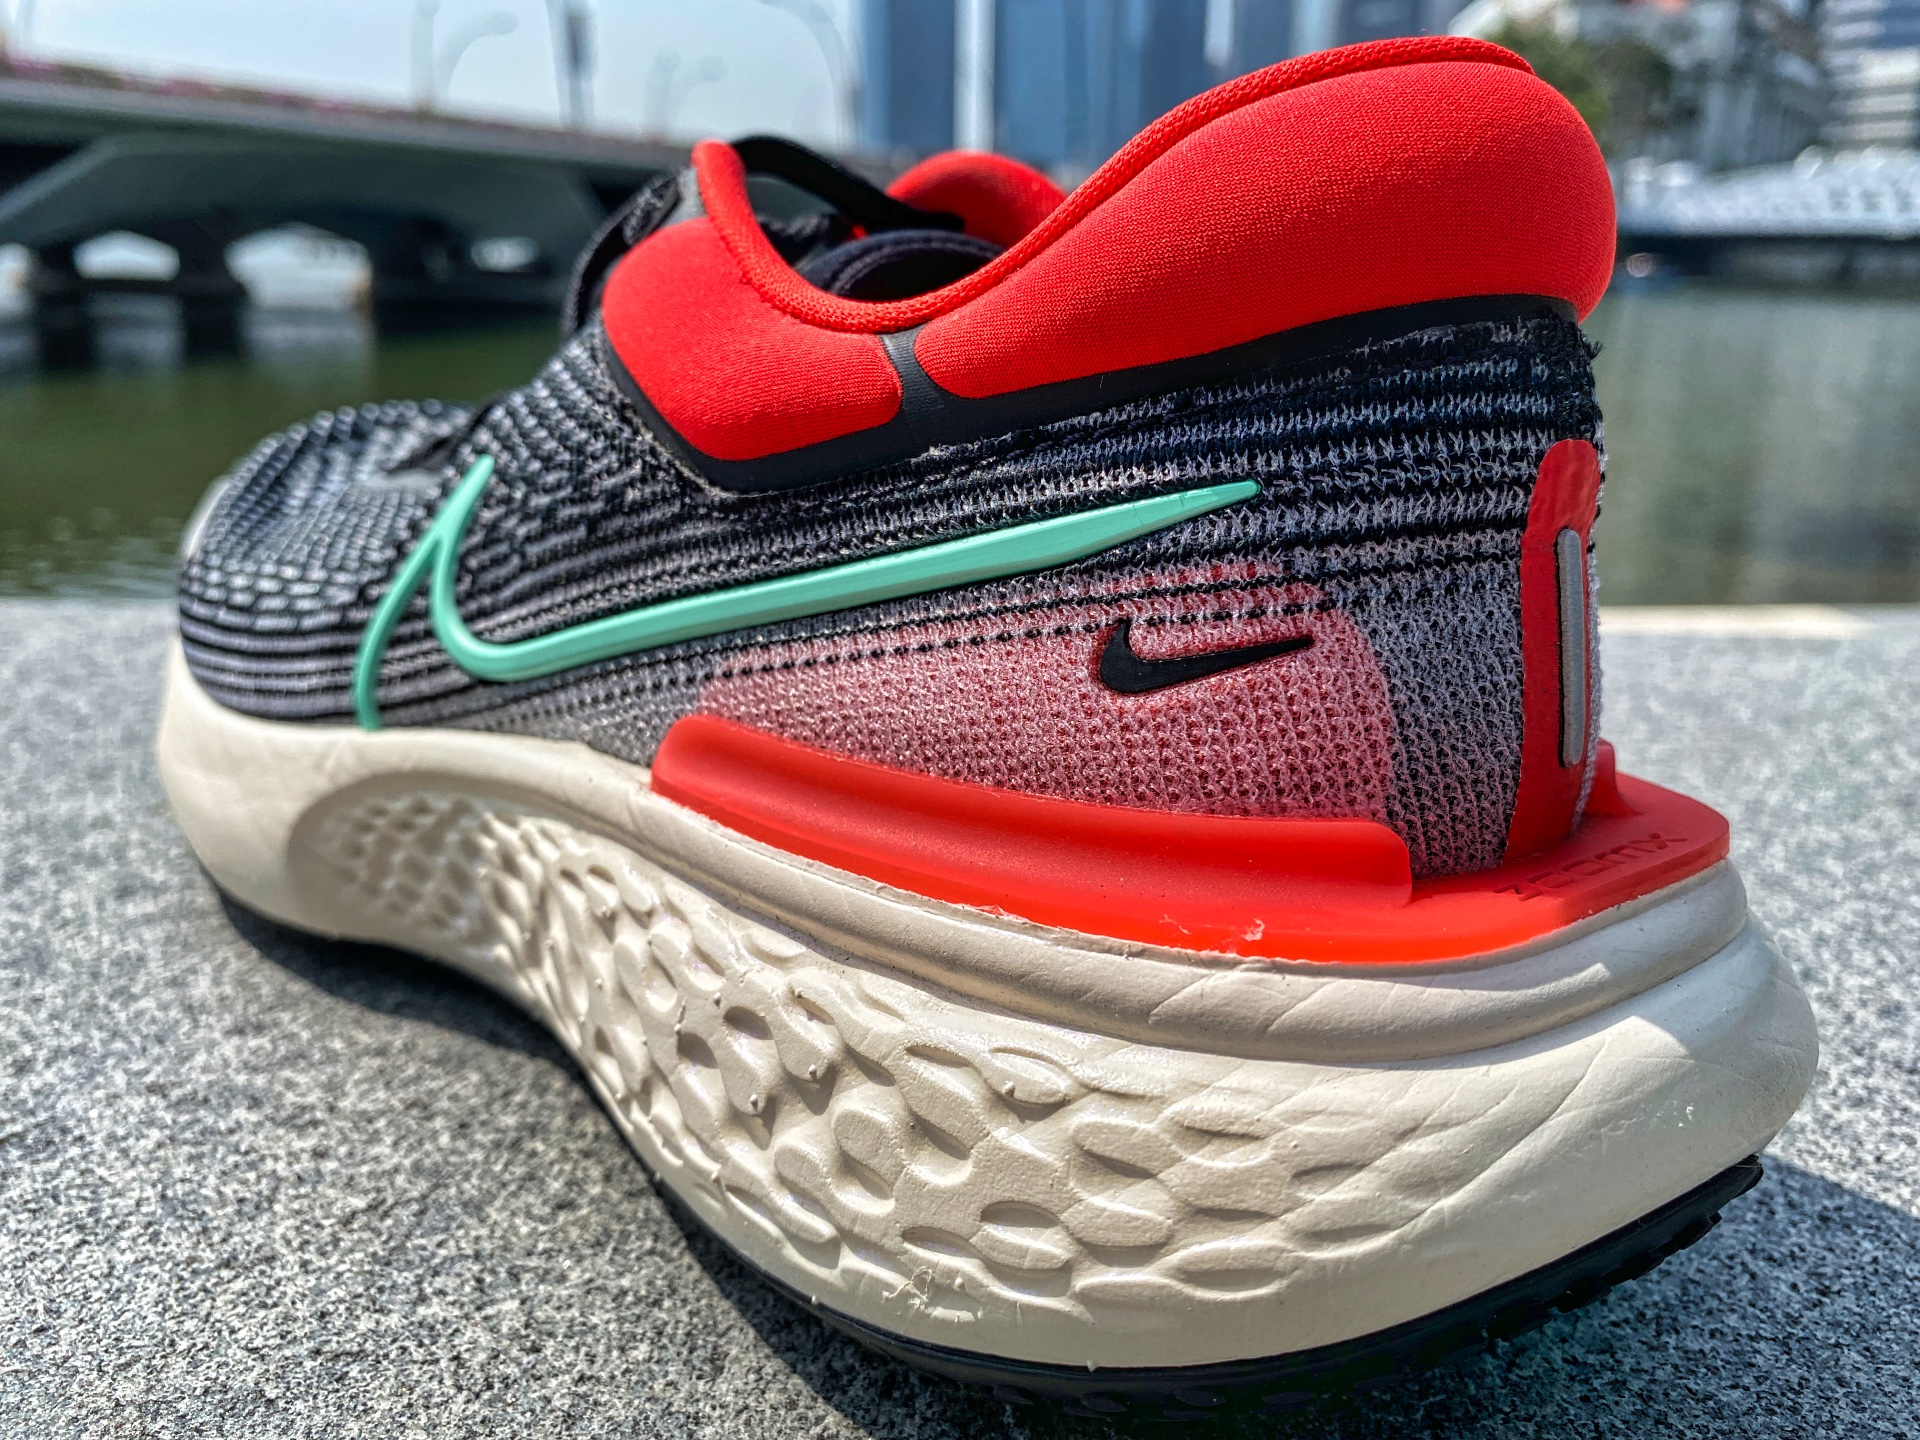 Nike ZoomX Invincible Run - pic 2407